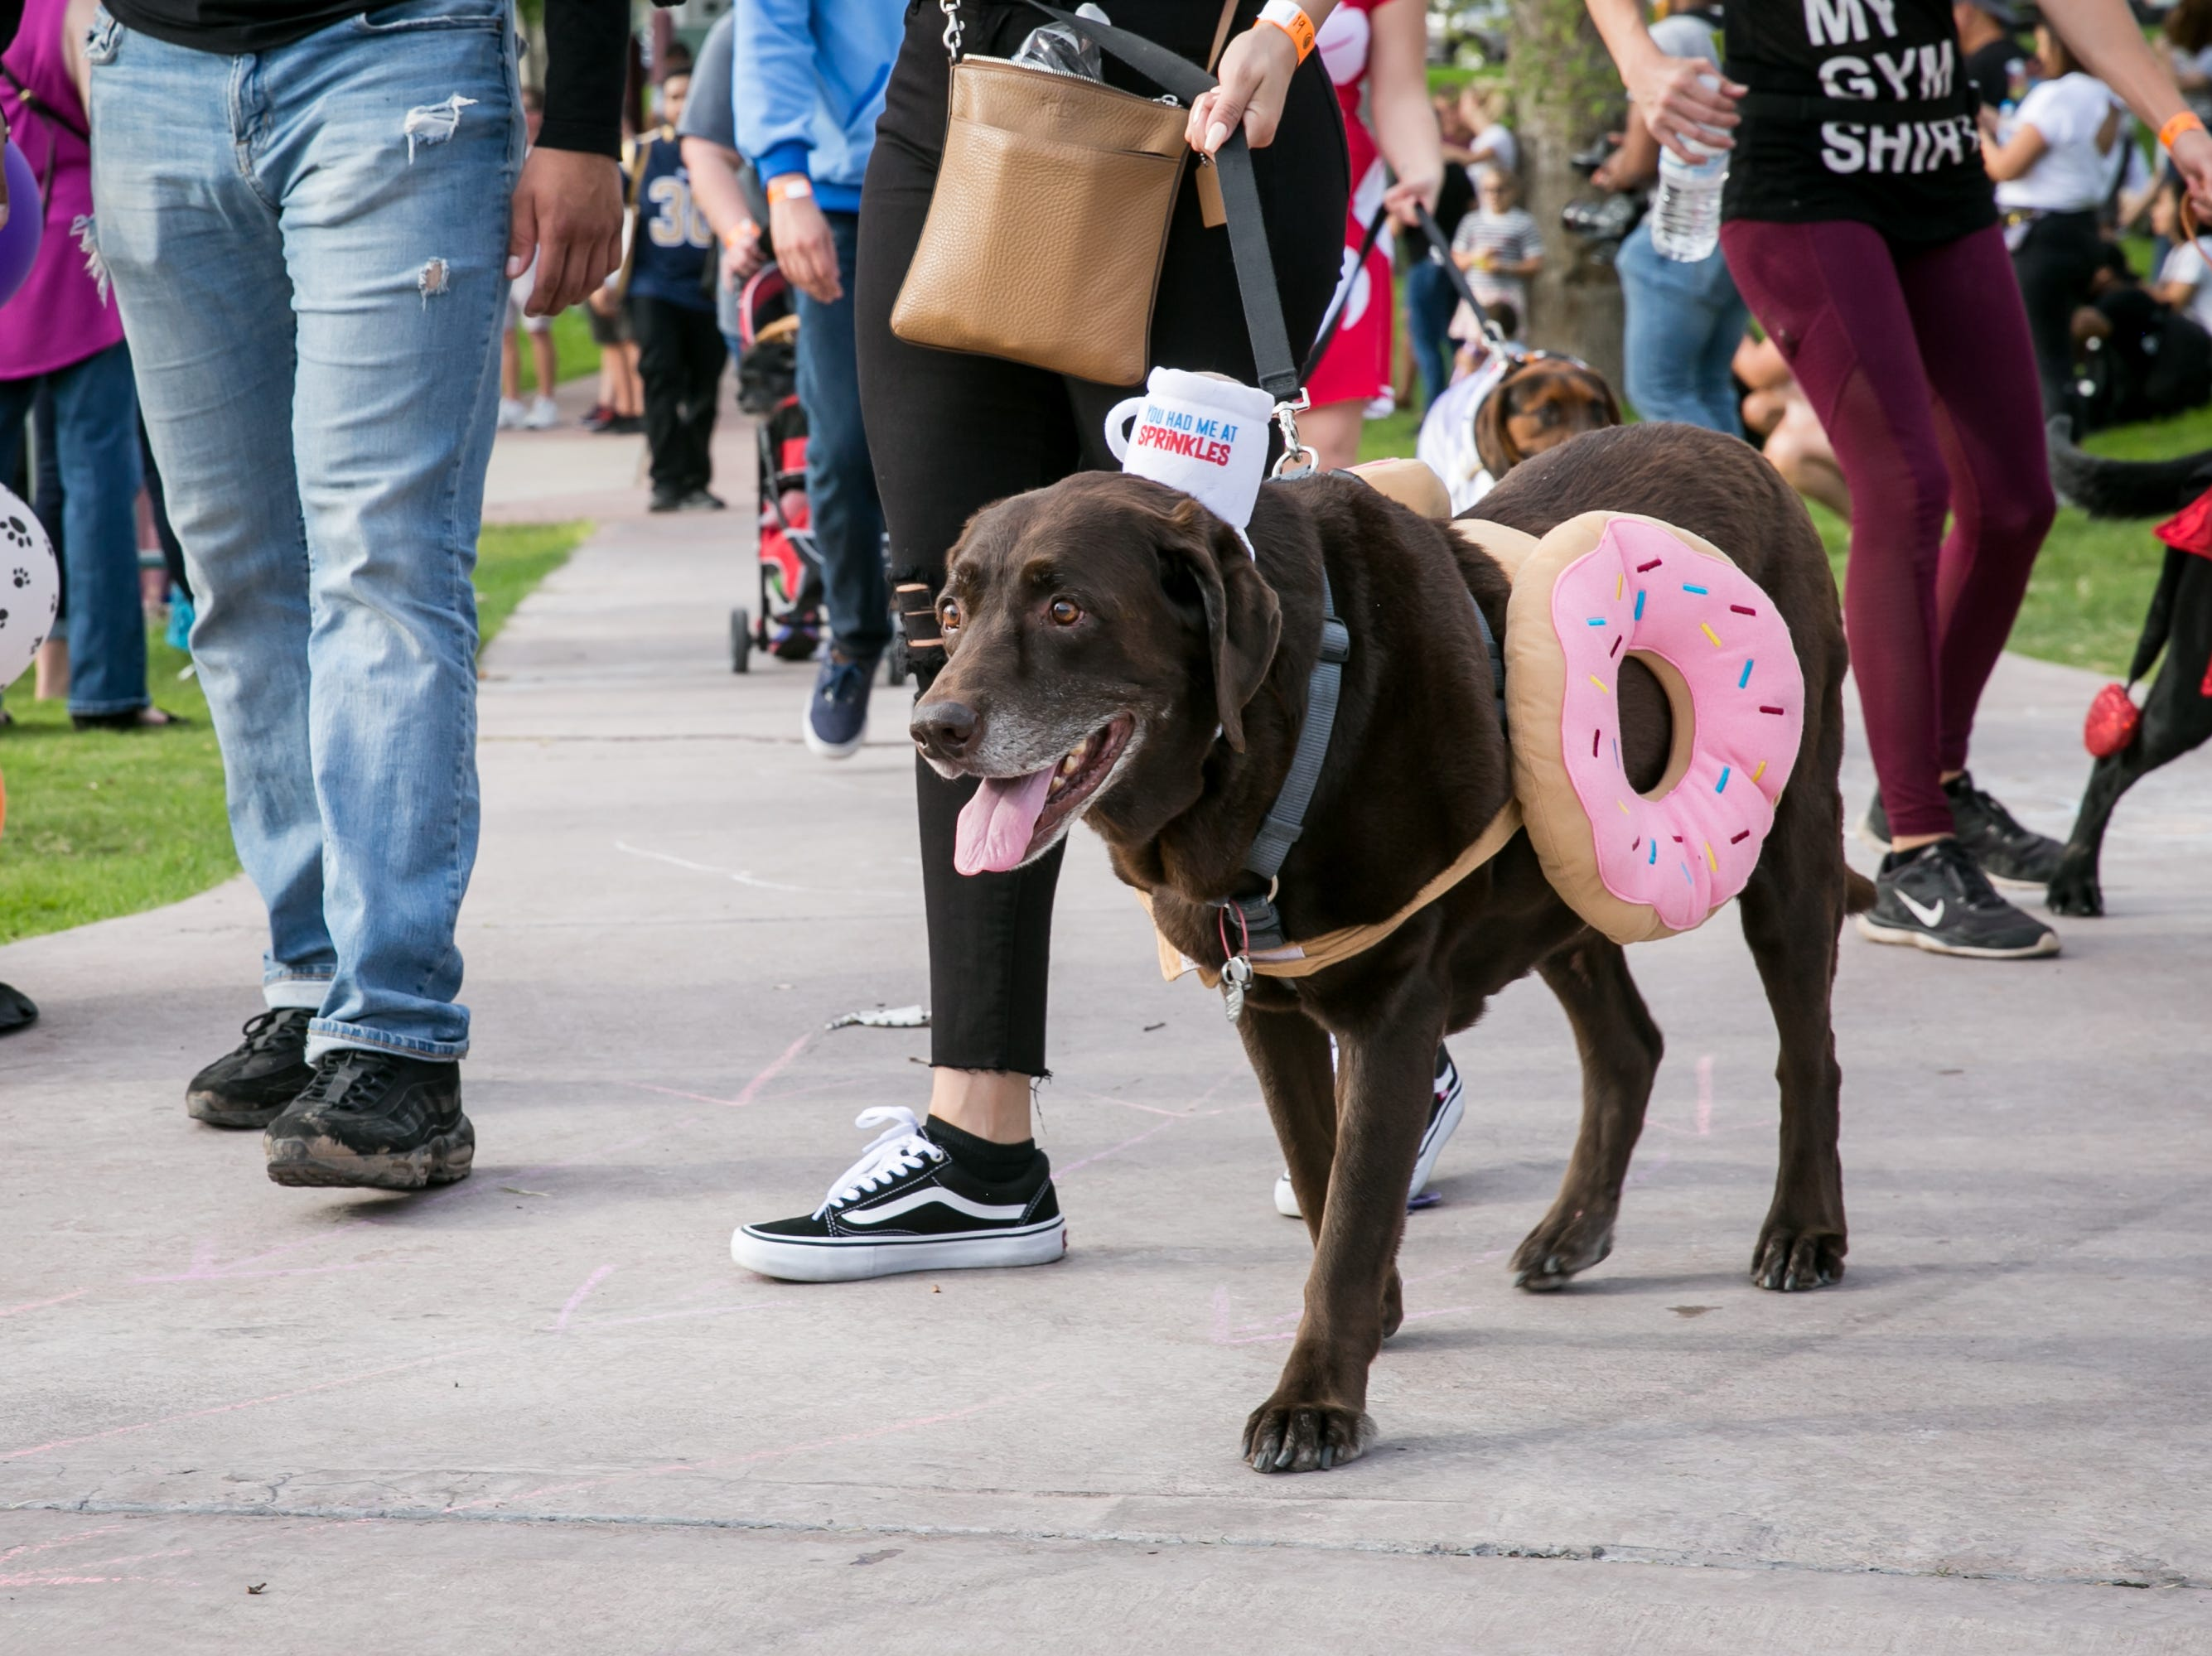 Donut dog was precious during Howl-o-Ween at Hance Park on Sunday, October 28, 2018.